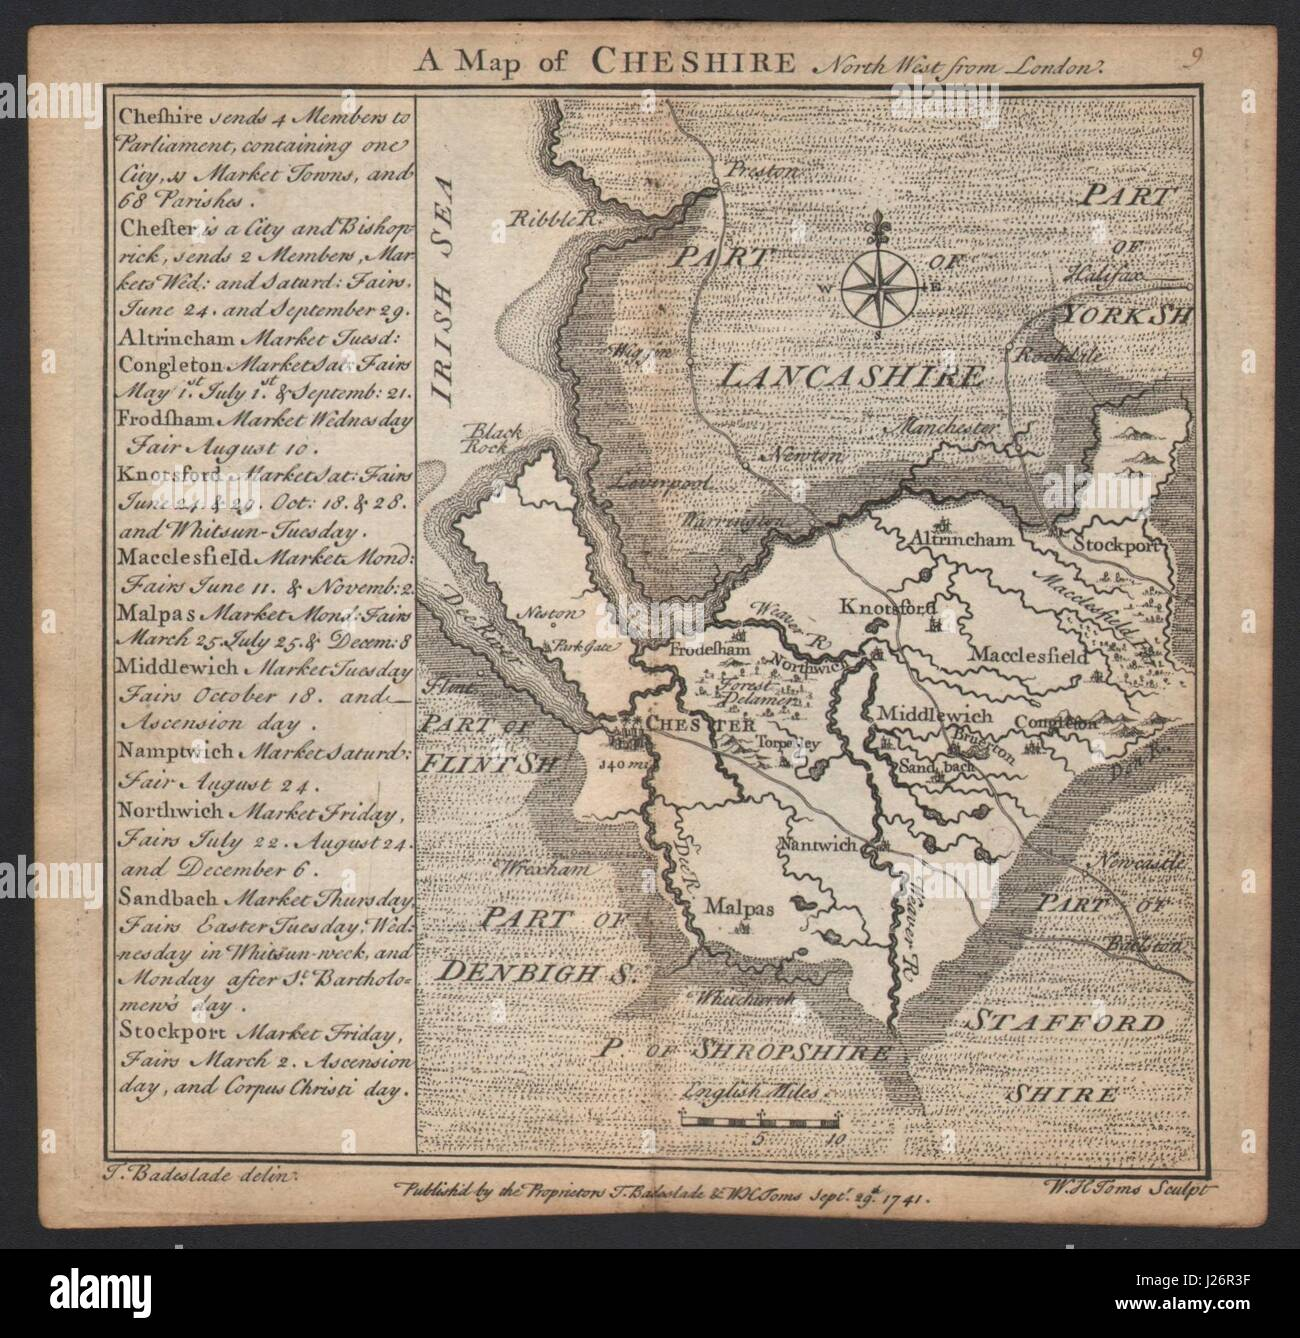 Antique county map of Cheshire by Badeslade & Toms 1742 old chart Stock Photo